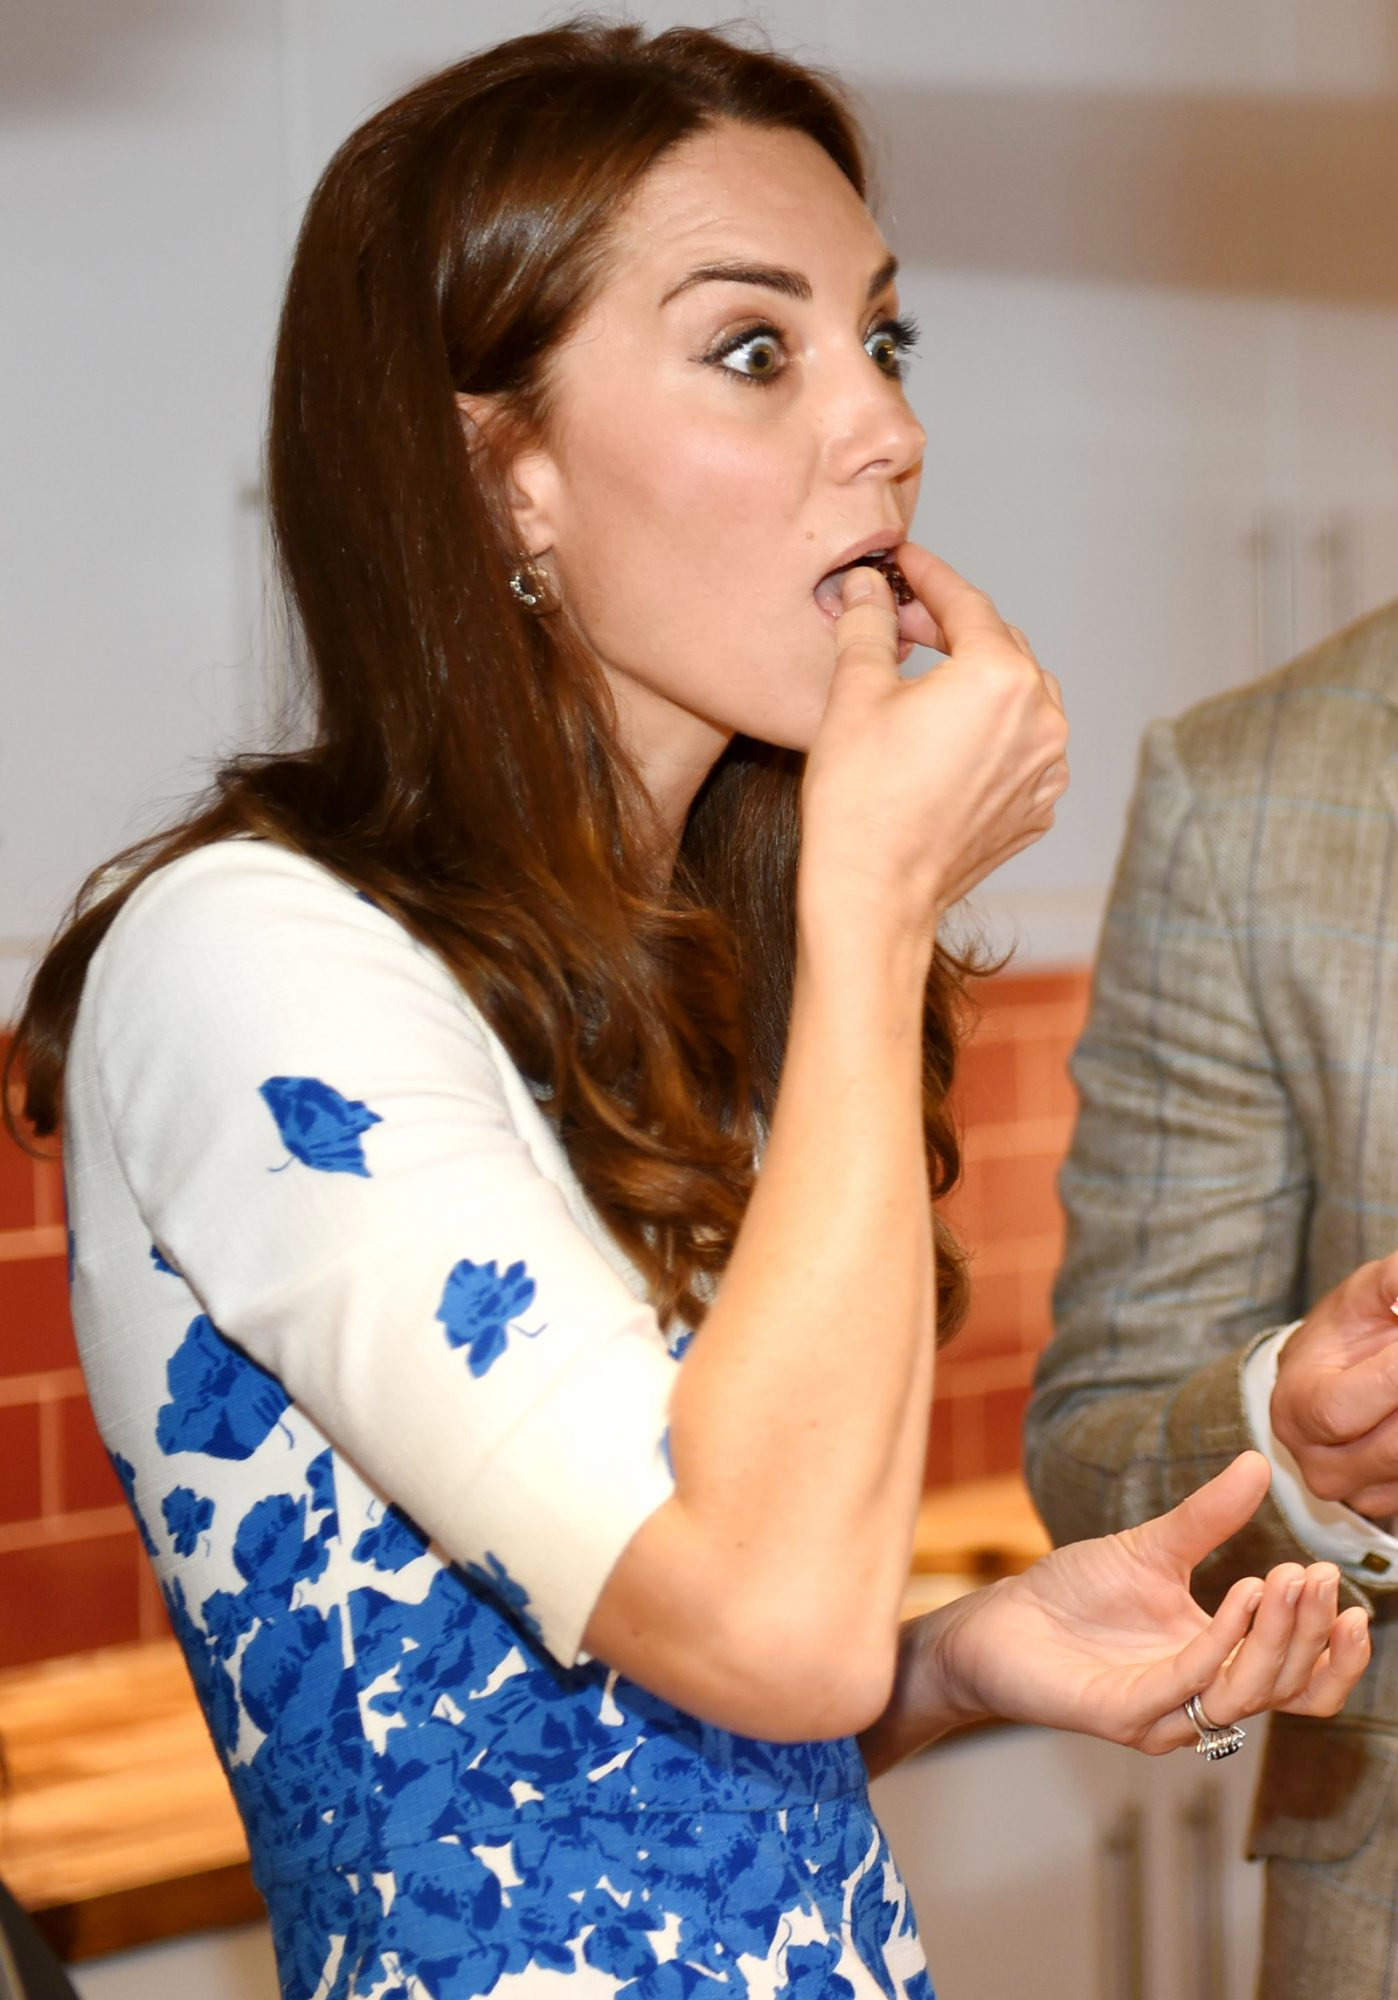 It's like how you look while eating a brownie, except ... It's Kate Middleton.